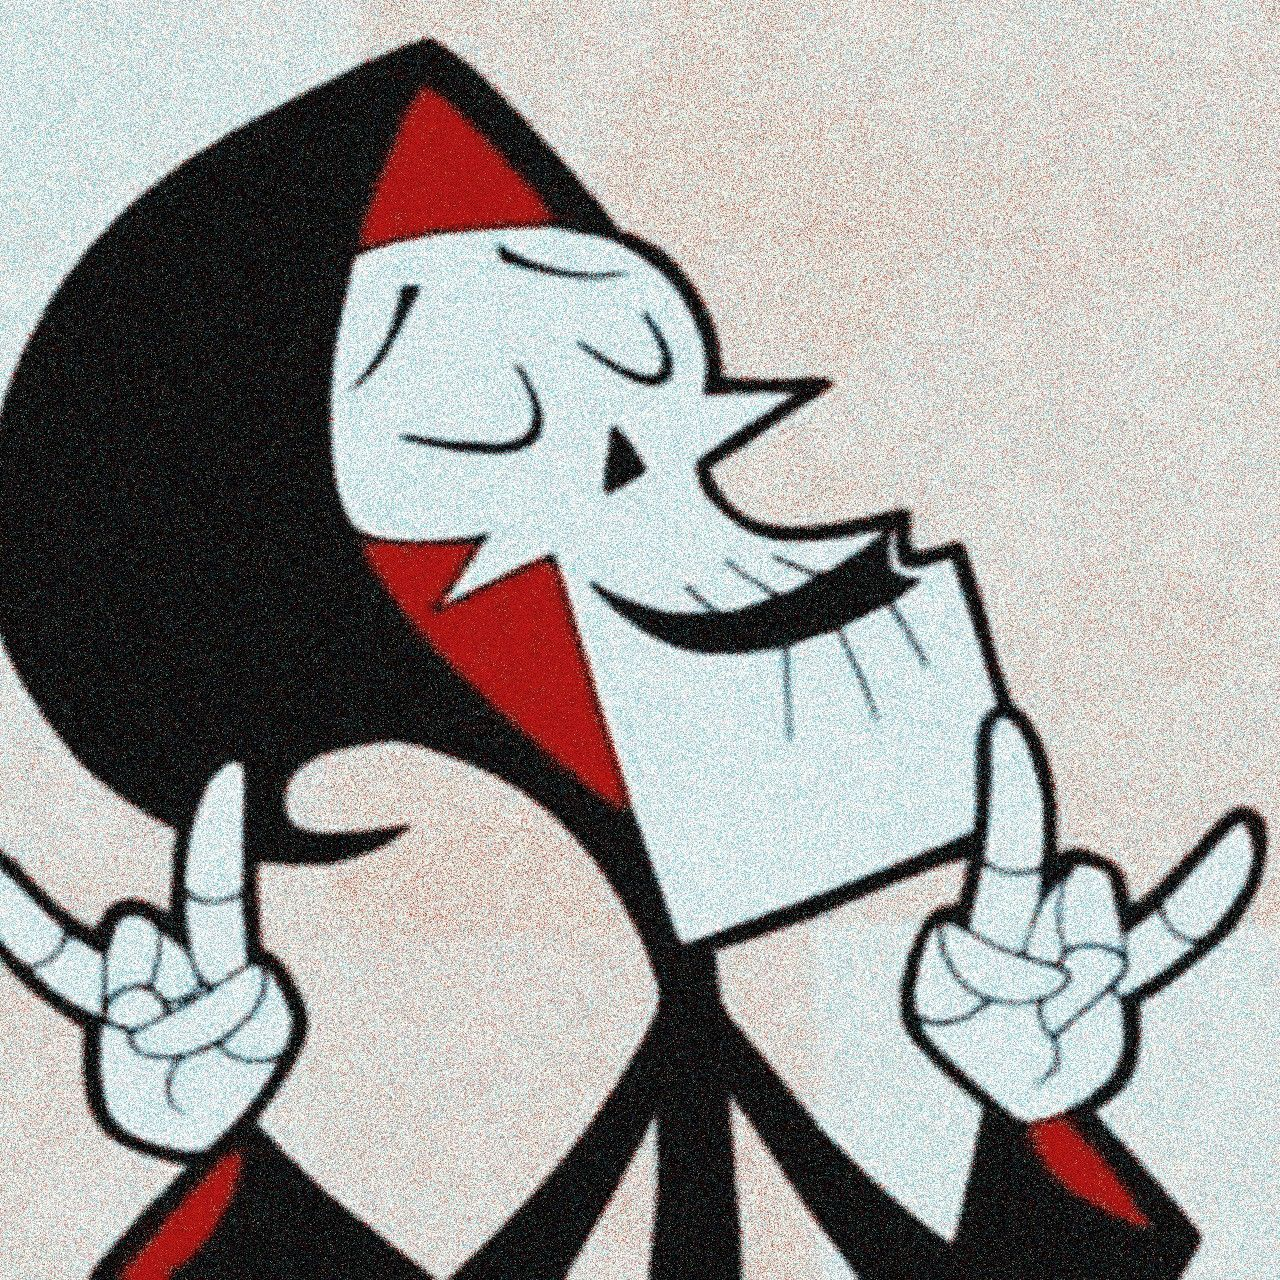 Red Black White Cartoon Aesthetic The Grim Adventures Of Billy